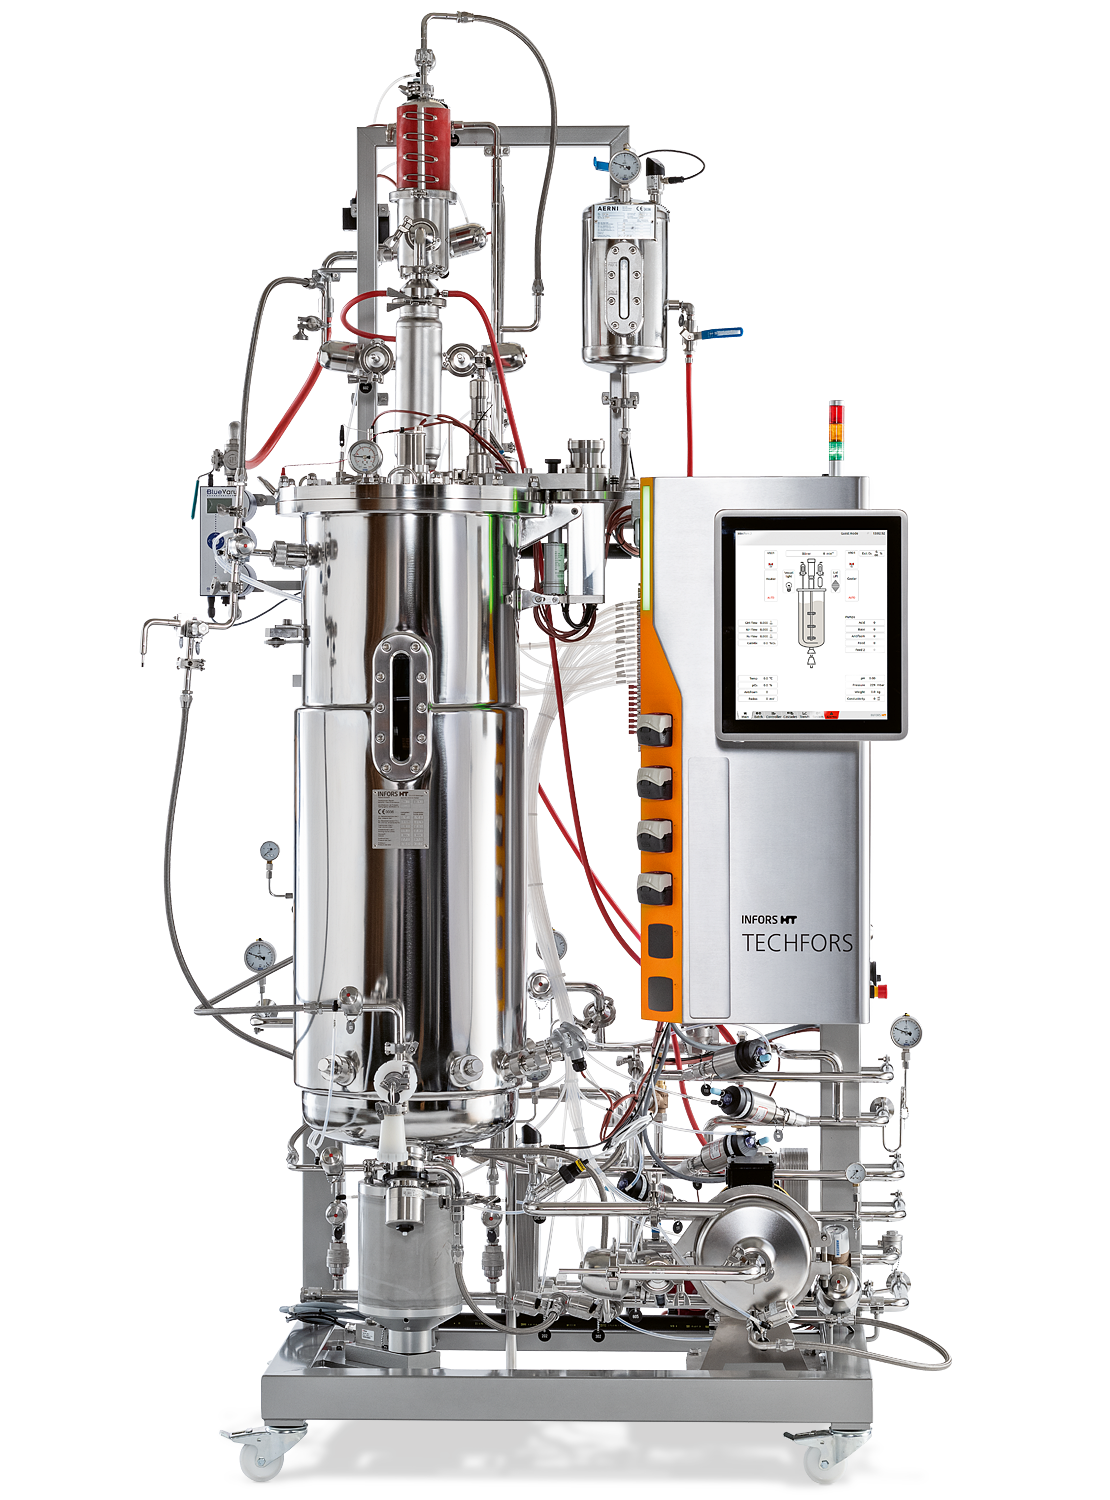 INFORS HT launches new version of the Techfors pilot bioreactor 03. Oct 2019